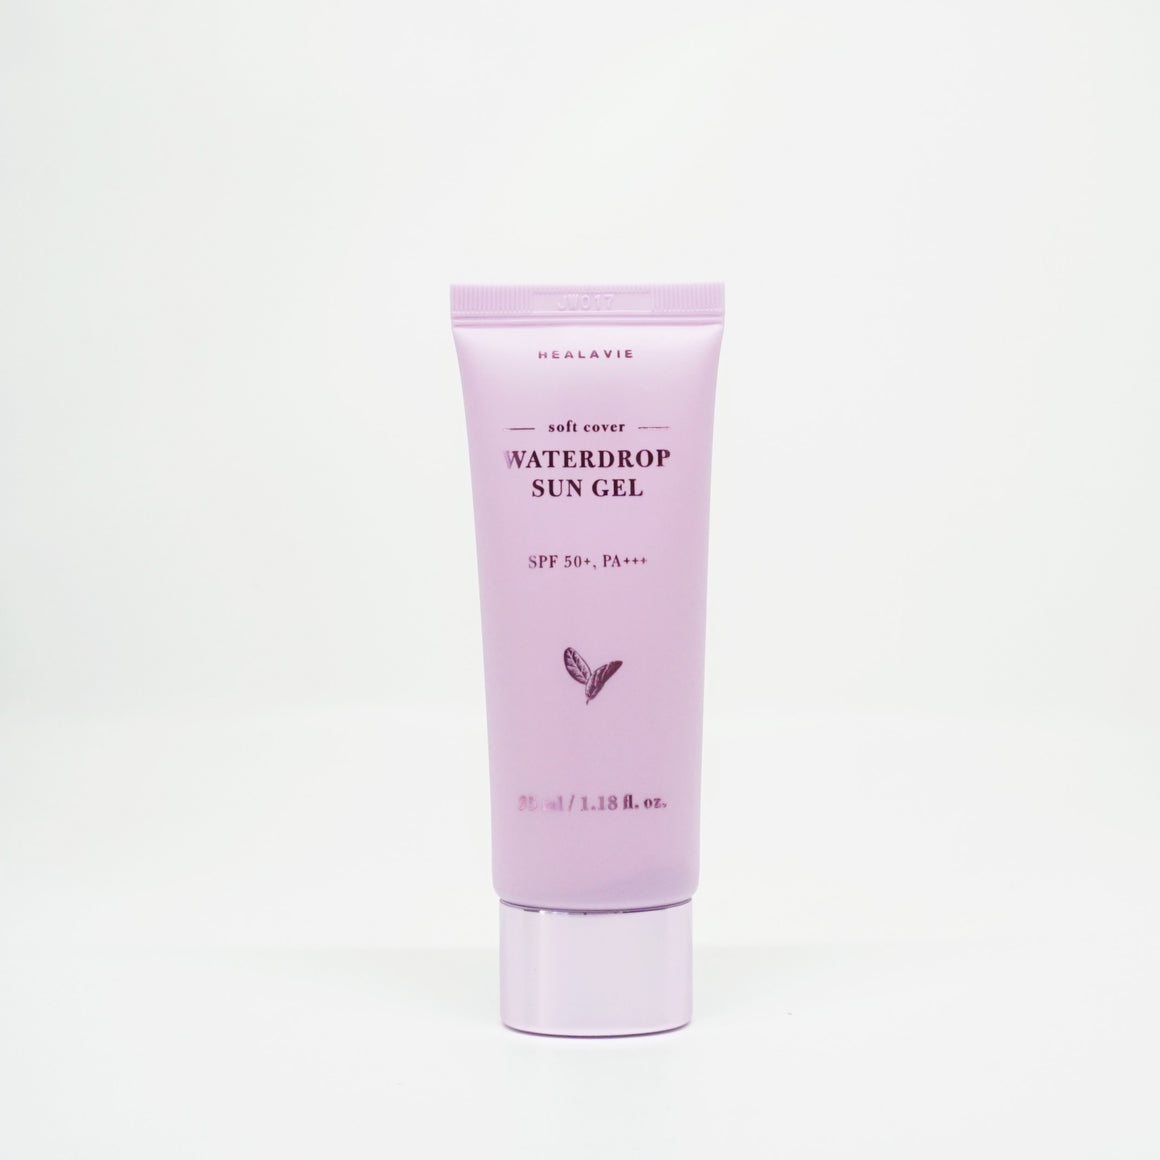 HEALAVIE Soft Cover Waterdrop Sun Gel